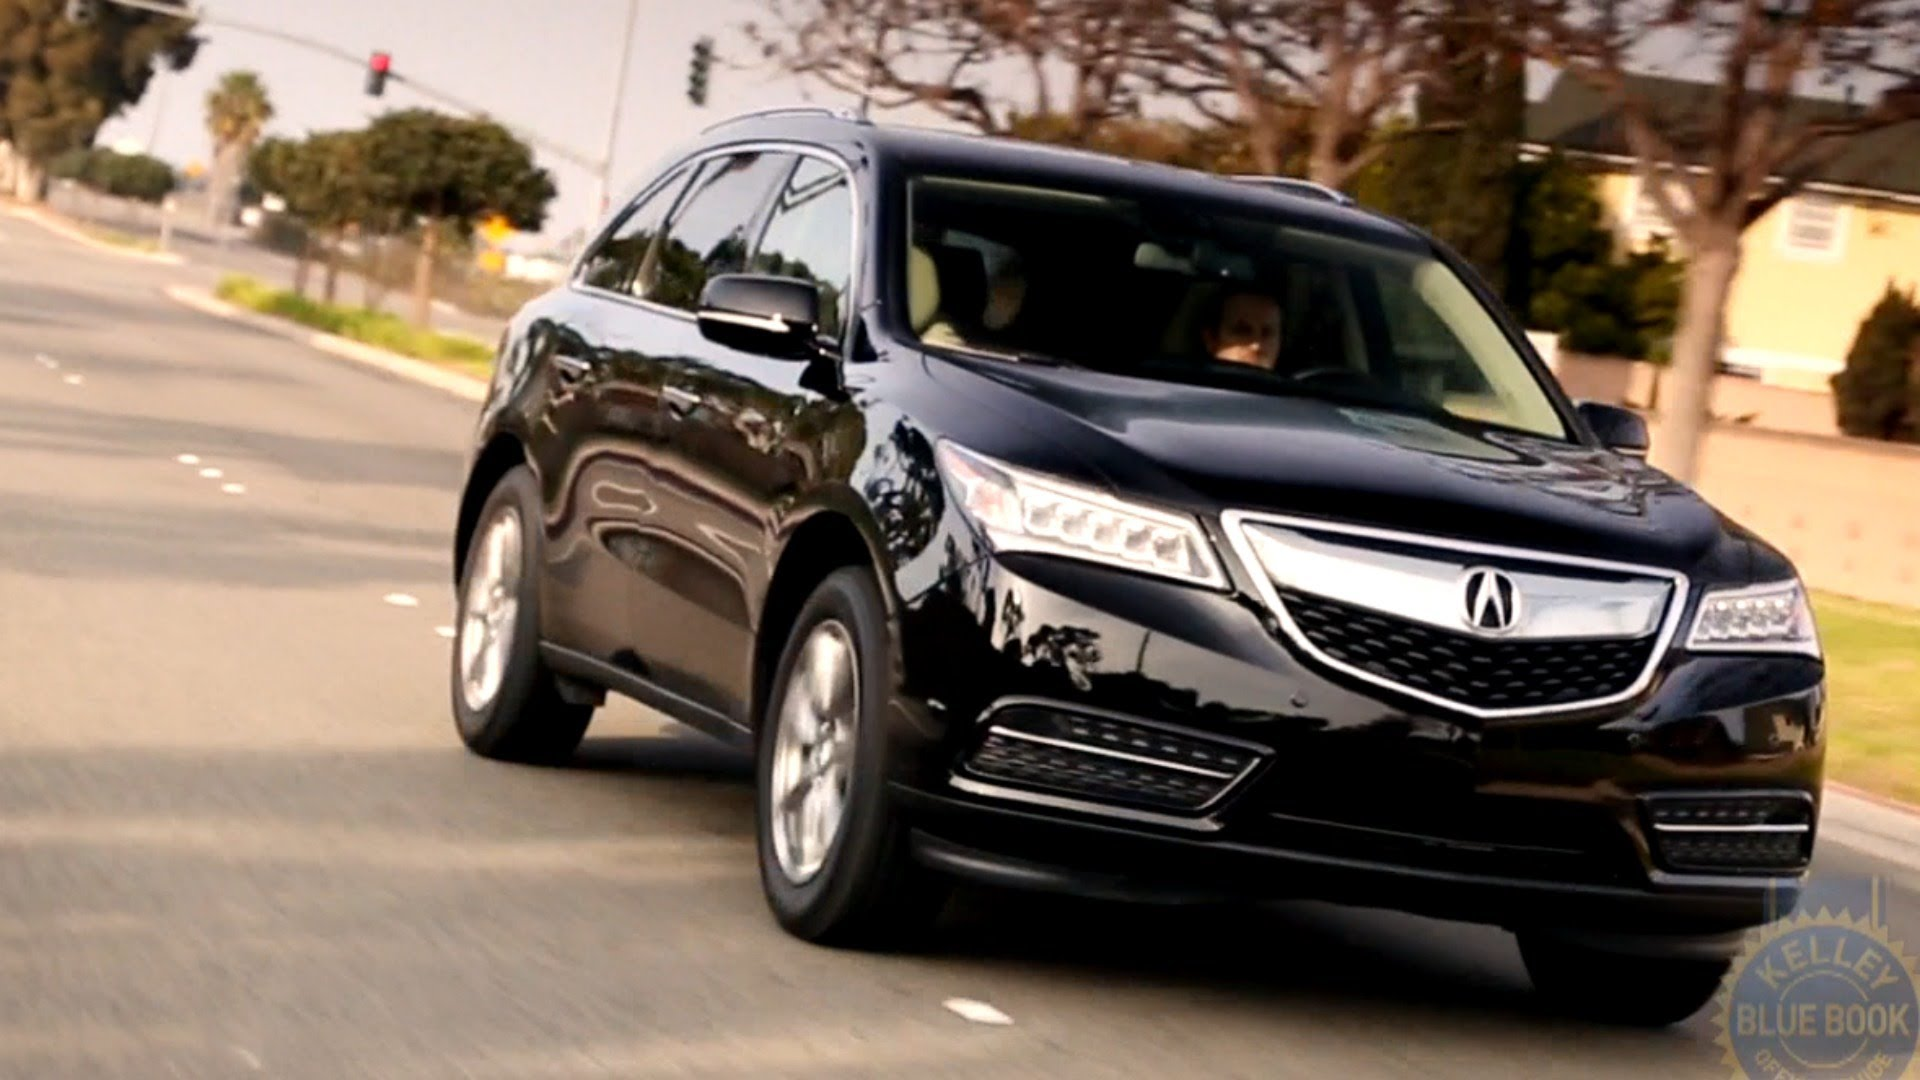 2015 Acura MDX Car Review Video Maryland